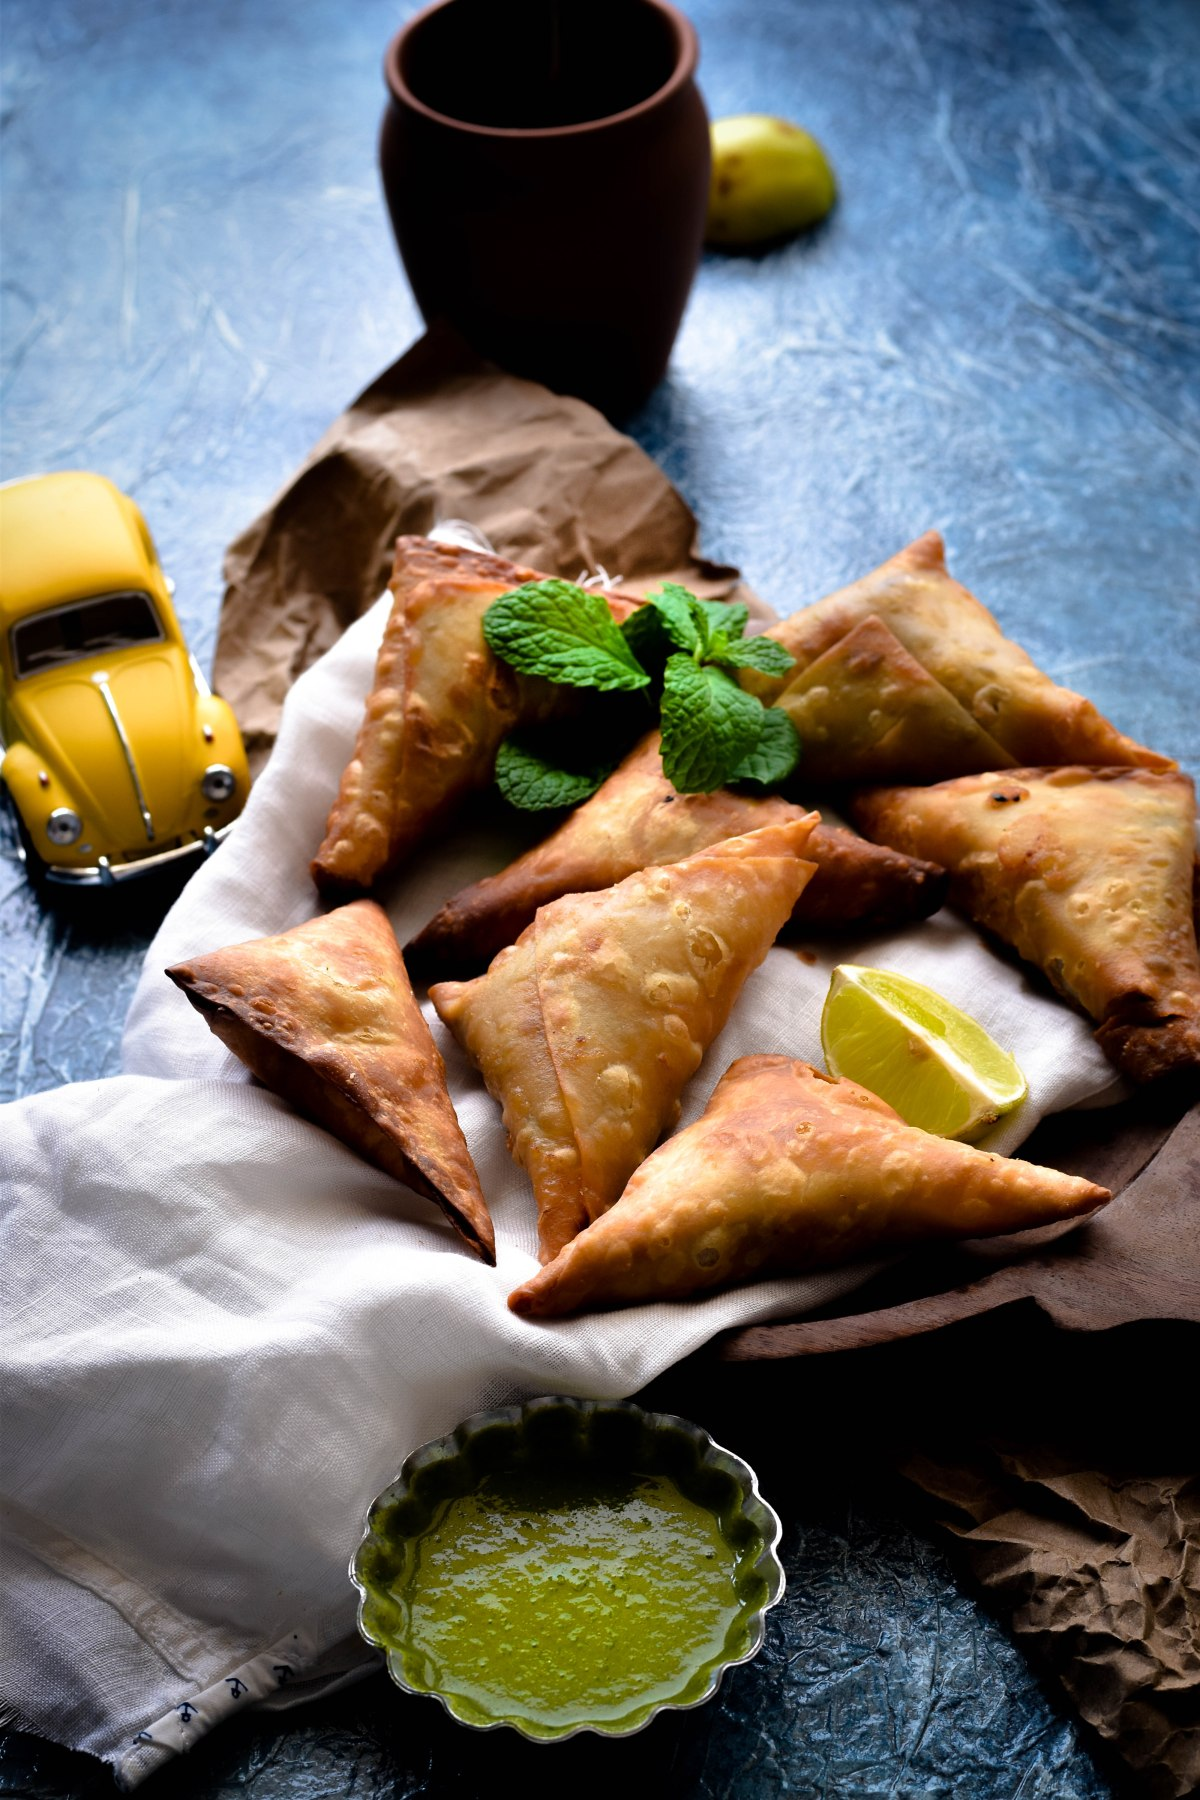 Achari Murg Samosa – Samosa stuffed with chicken cooked in picklingspices